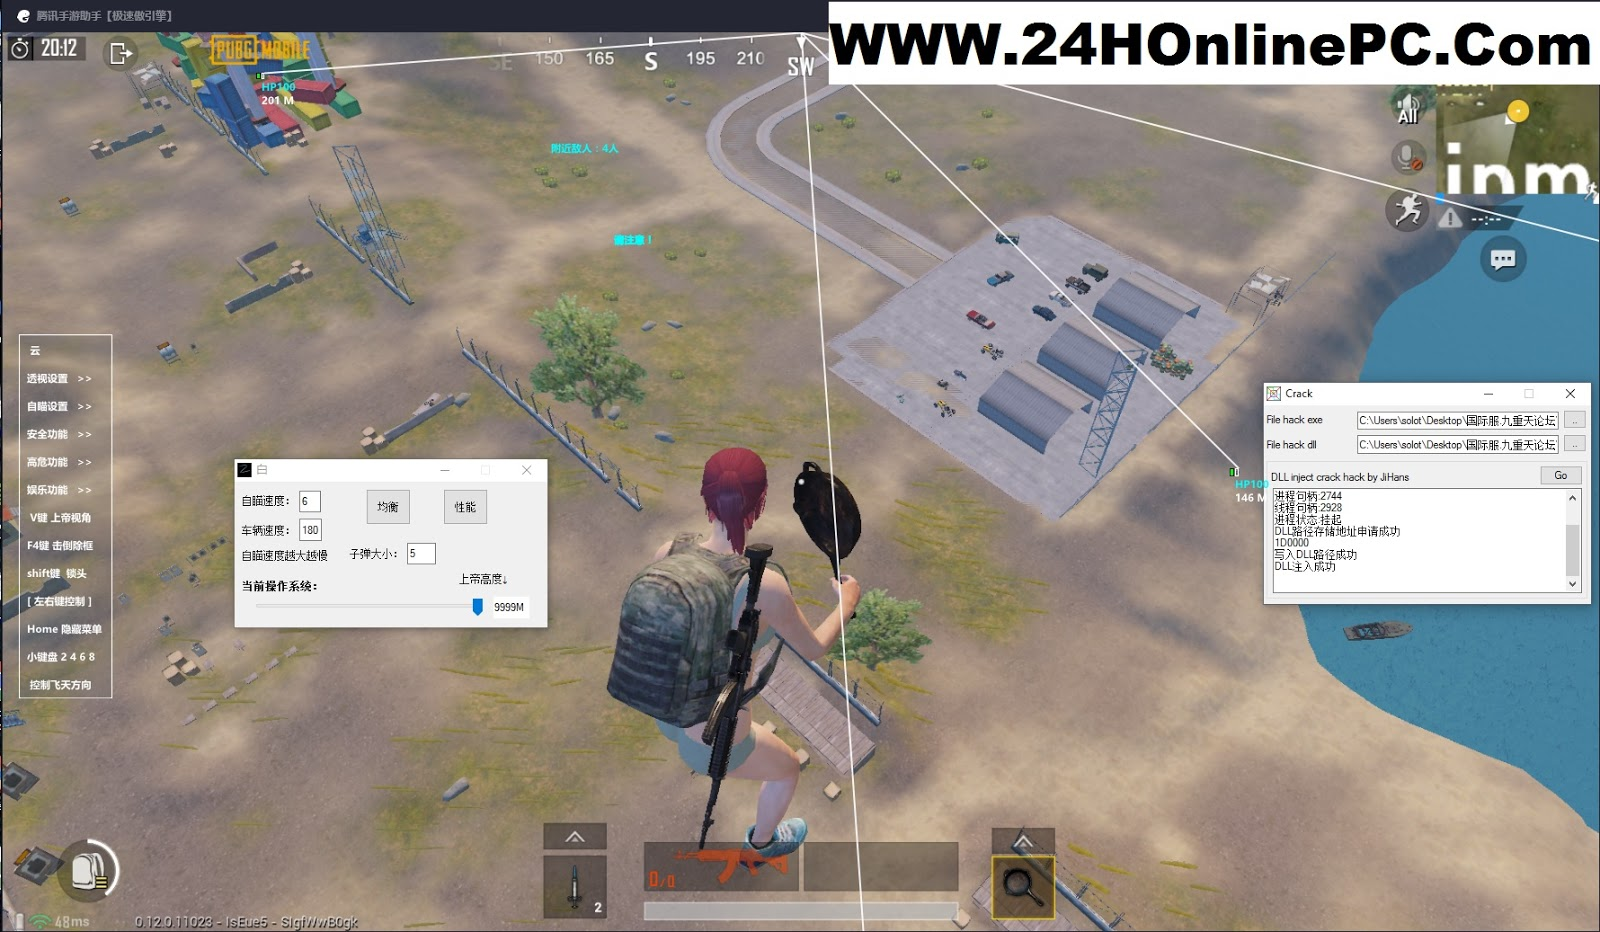 Hack Pubg Mobile Pc Vip - How Hack Pubg Mobile Android No Root